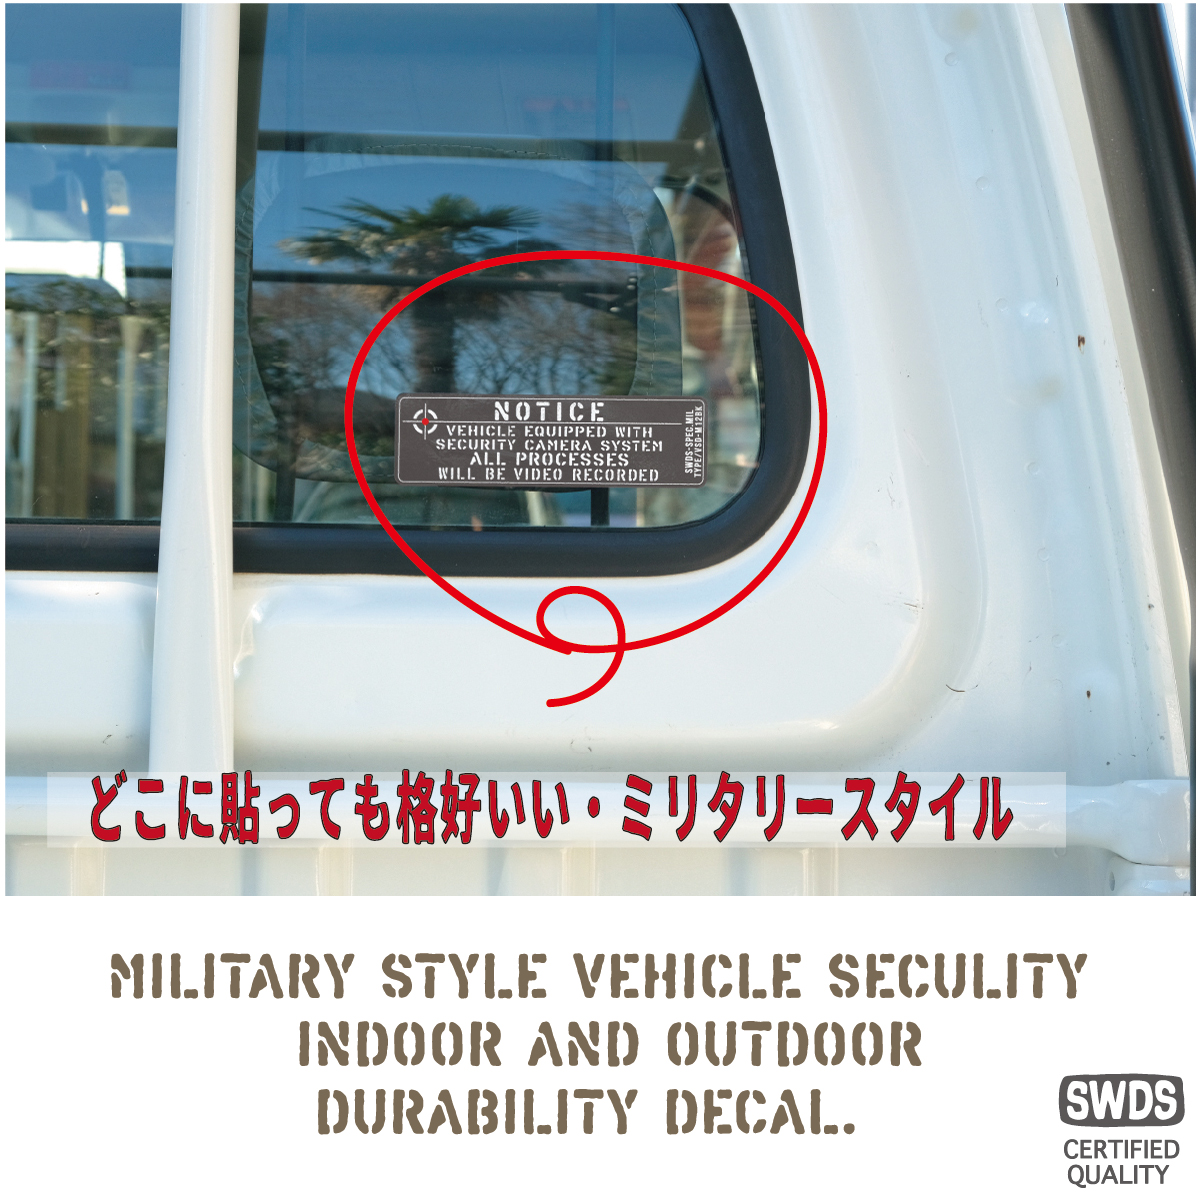 VEHICLE SECULITY DECALS